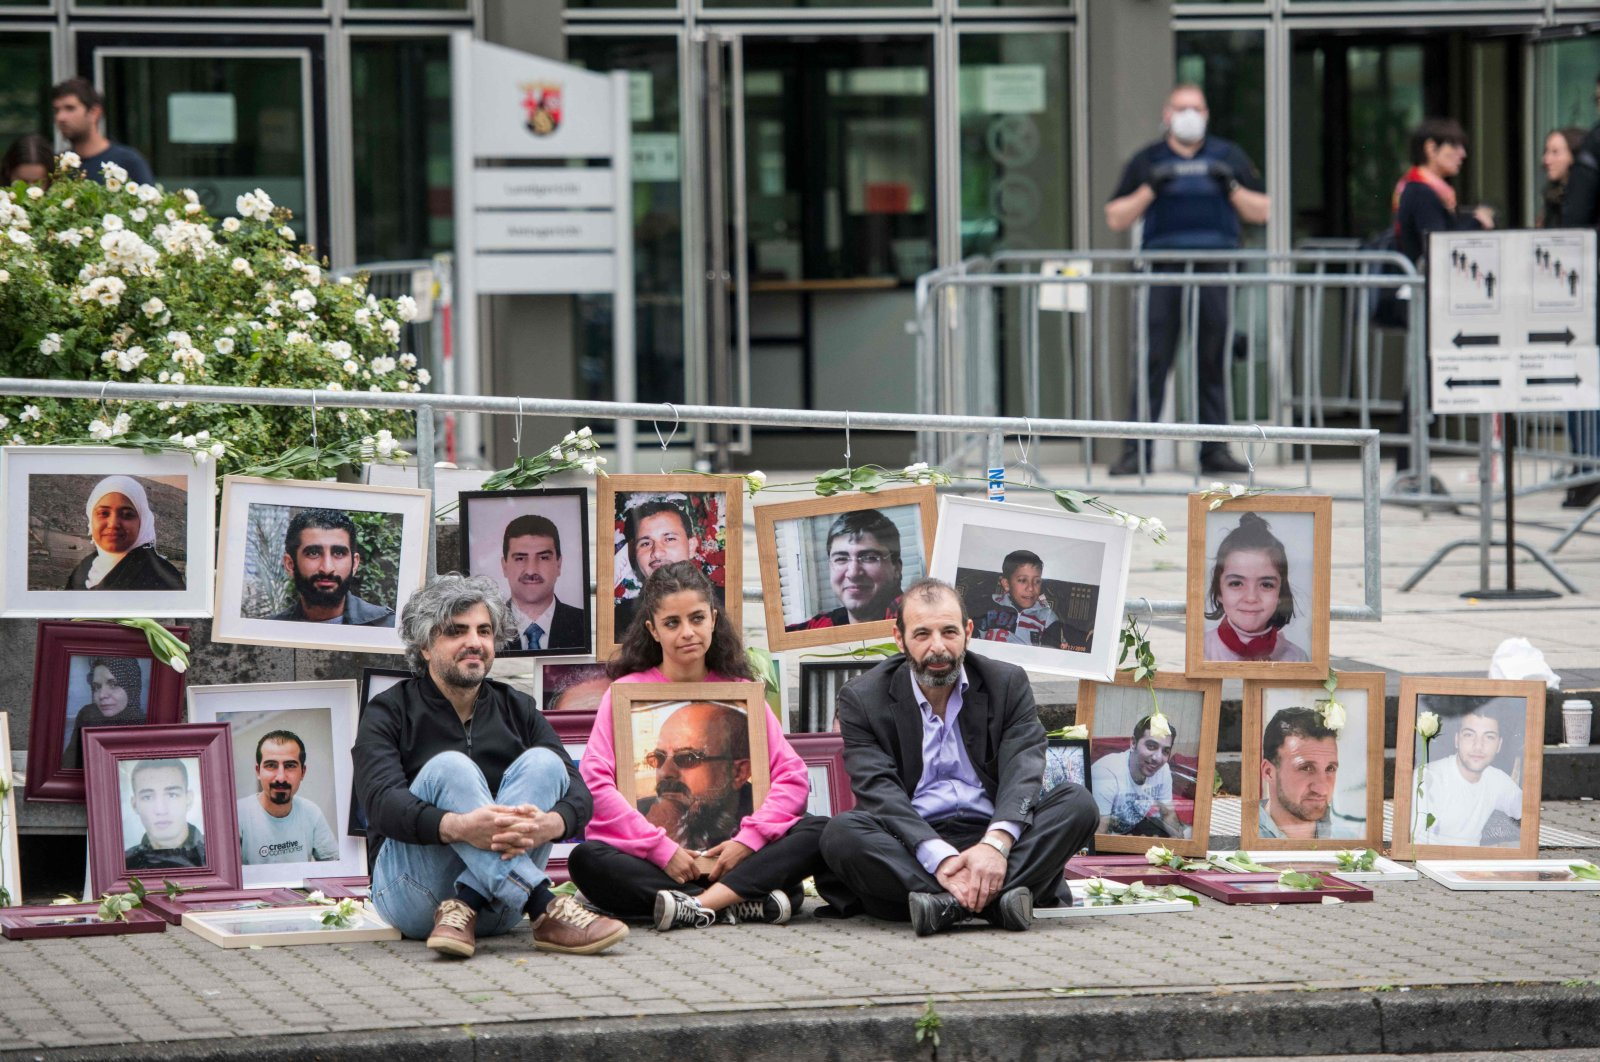 Syrian campaigner Wafa Mustafa (C) holding a picture of her father as she sits beside co-plaintiff, Syrian Oscar-nominated filmmaker Feras Fayyad (L), and Syrian human rights lawyer Anwar al-Bunni (R), in front of pictures of victims of the Syrian regime, during a protest outside the trial, in Koblenz, western Germany, June 4, 2020. (AFP)